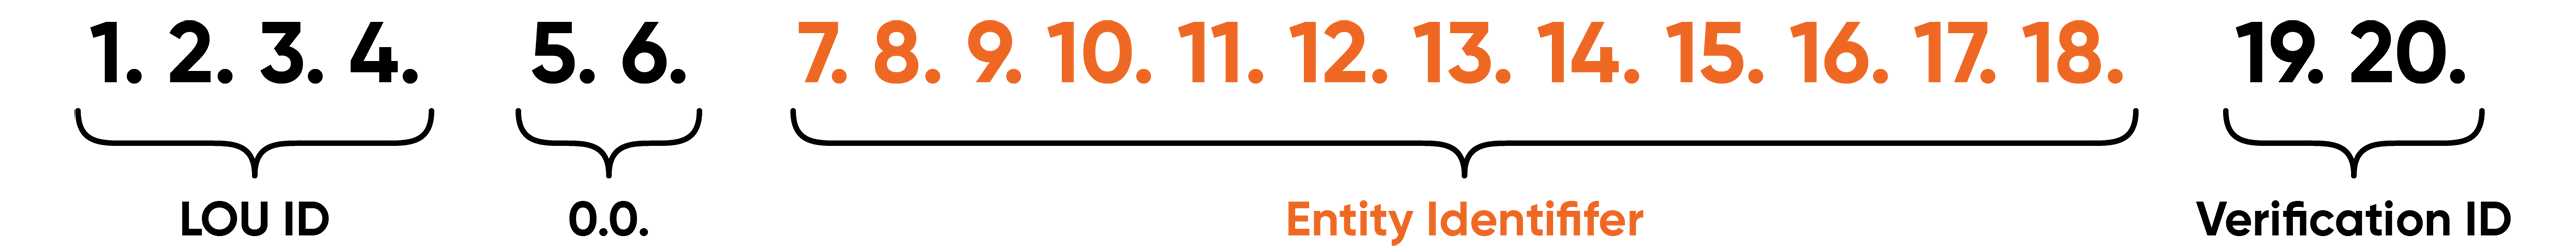 Legal Entity Identifier number structure